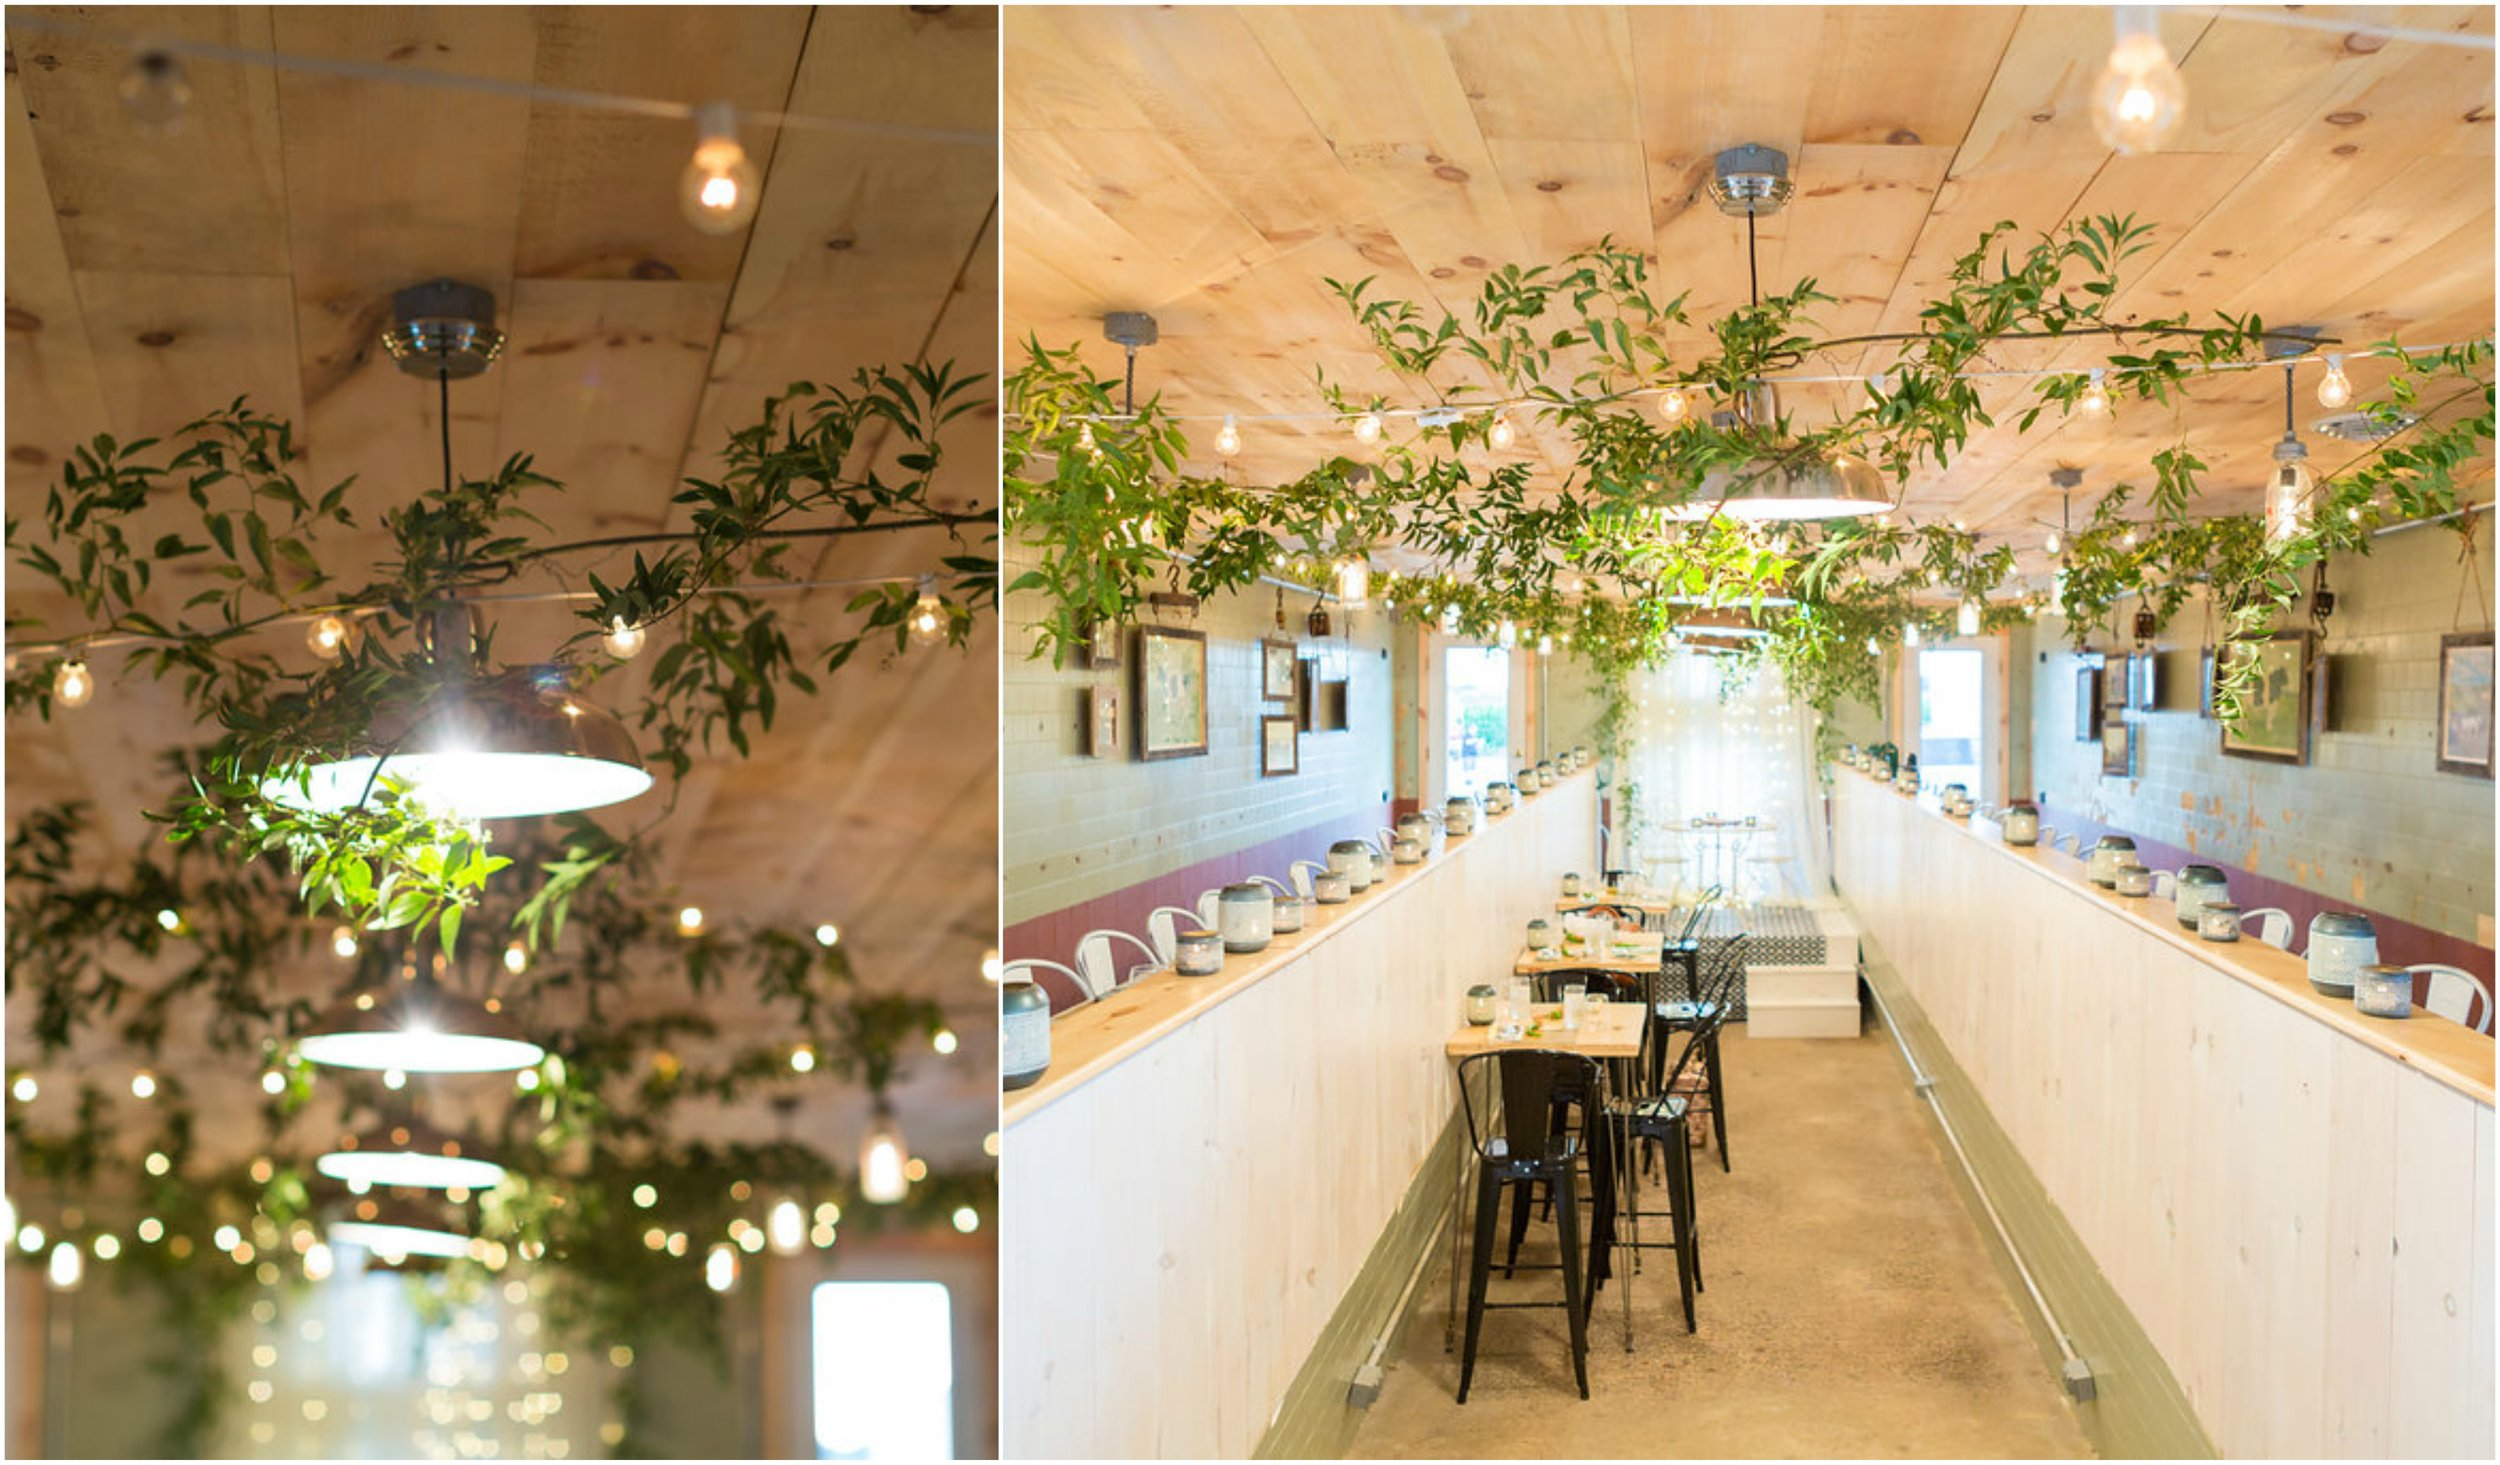 ceiling vines from Farm to Table Dinner